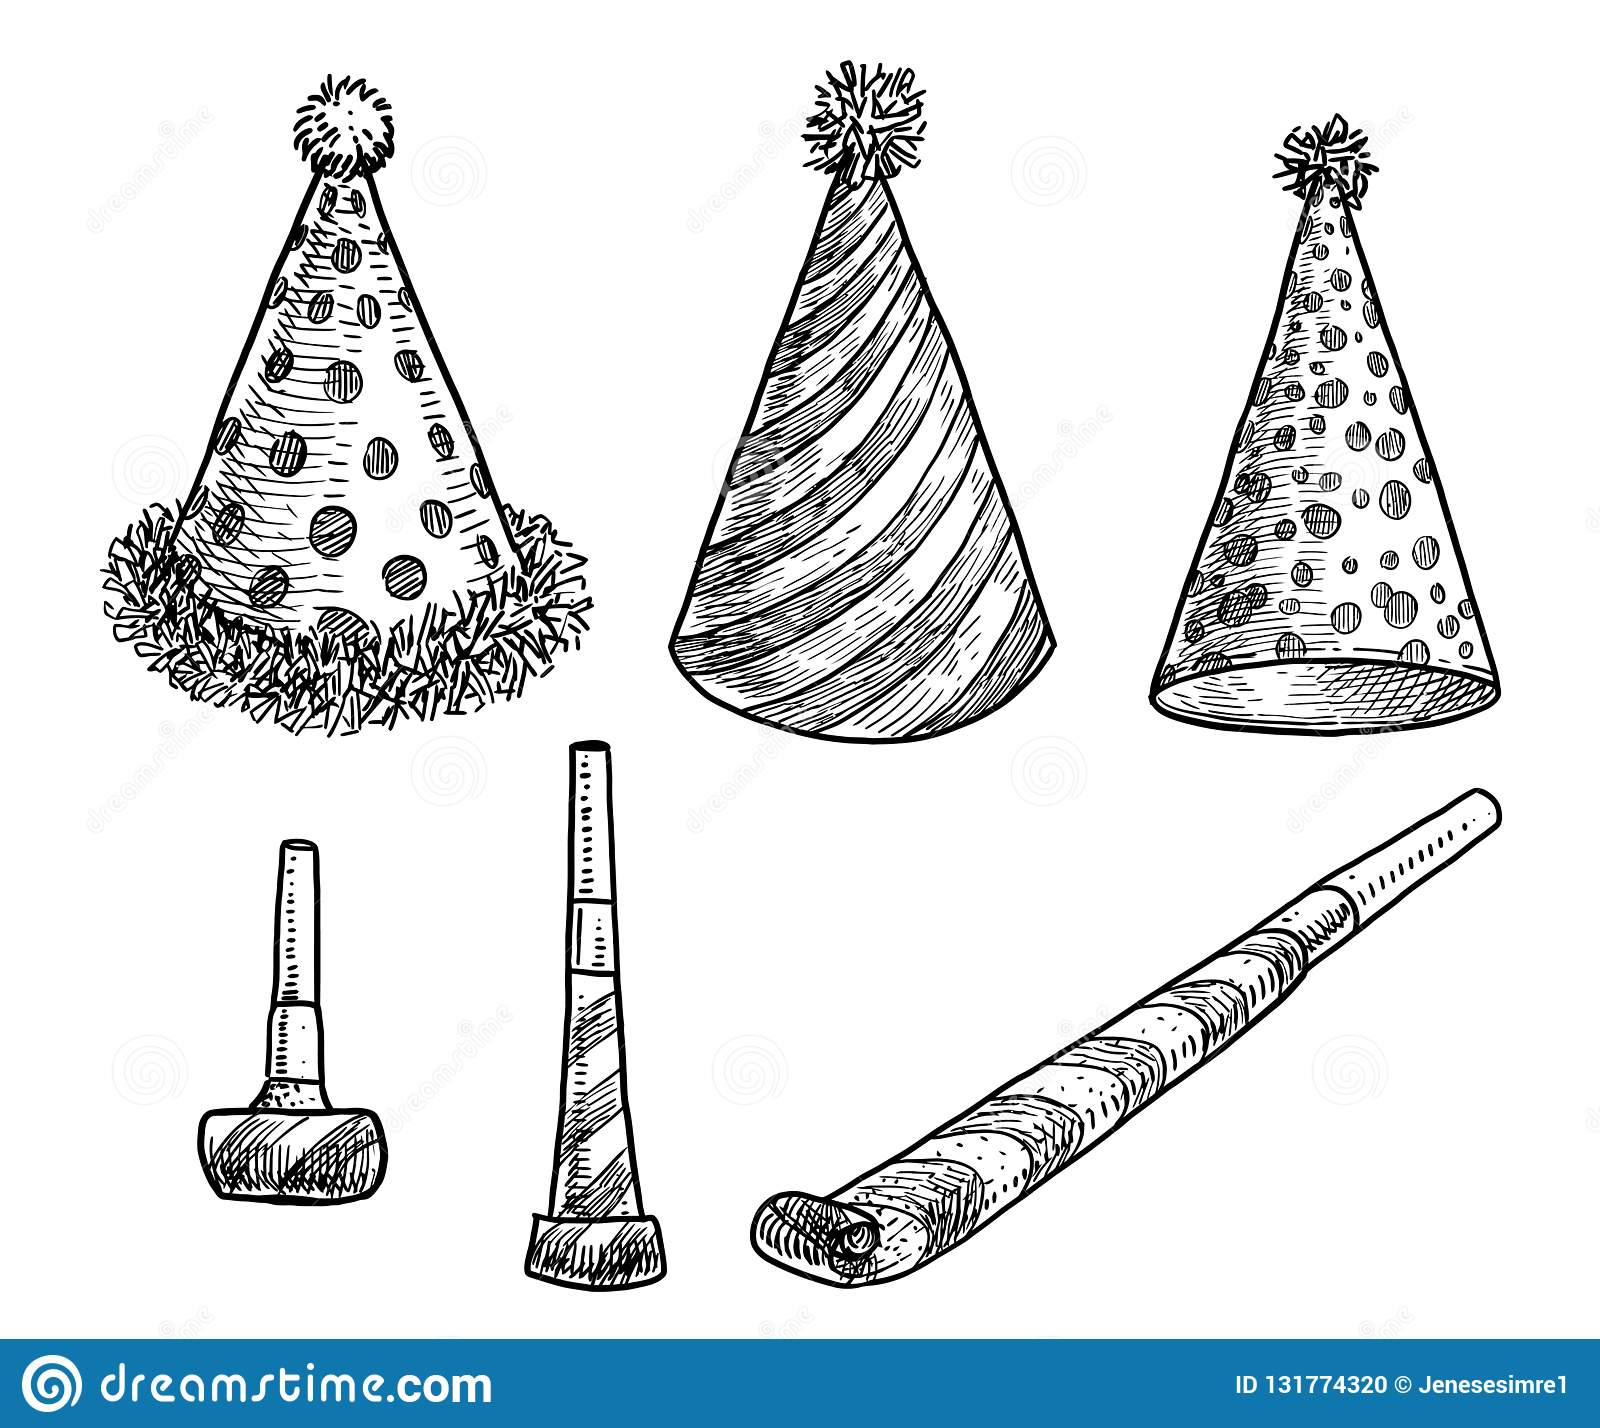 Party Hat Clipart Black And White Party Hat And Blower Whistle Illustration Drawing Engraving Ink